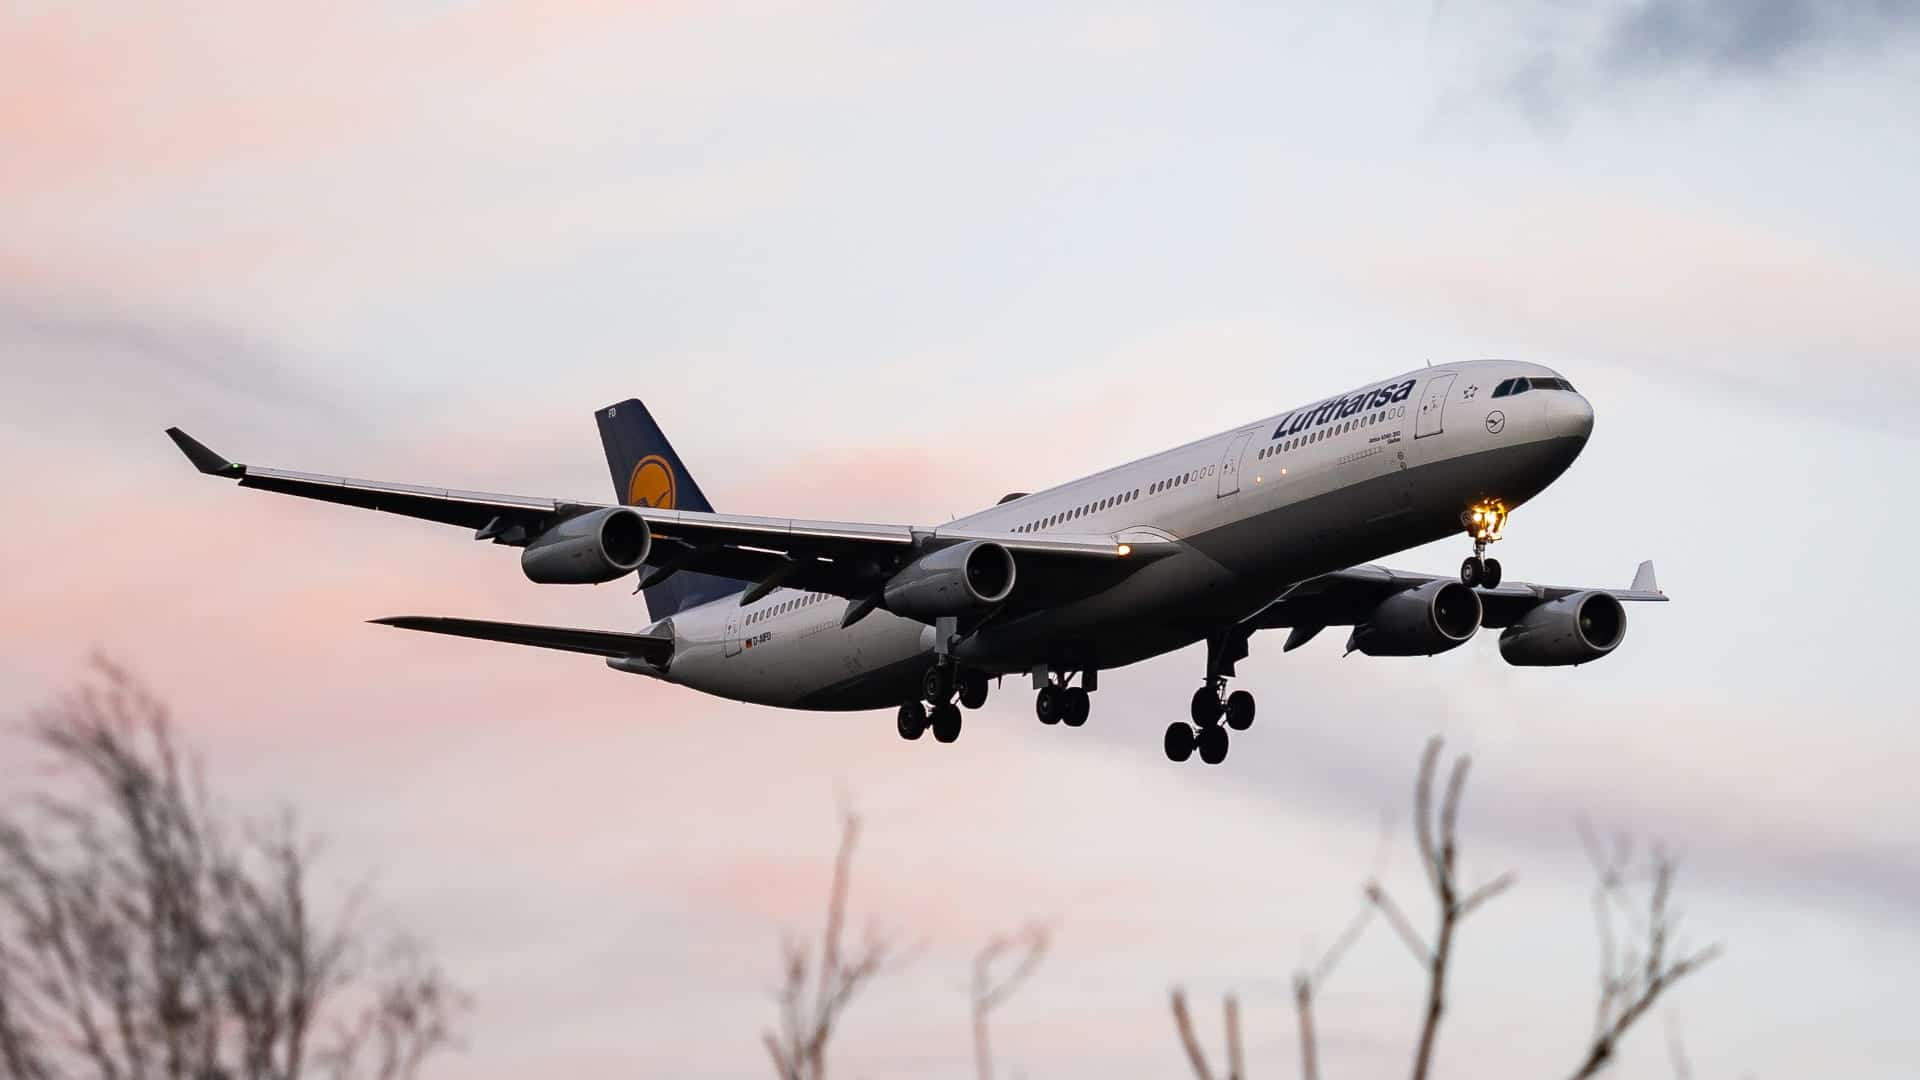 Tips for Buying Airline Tickets